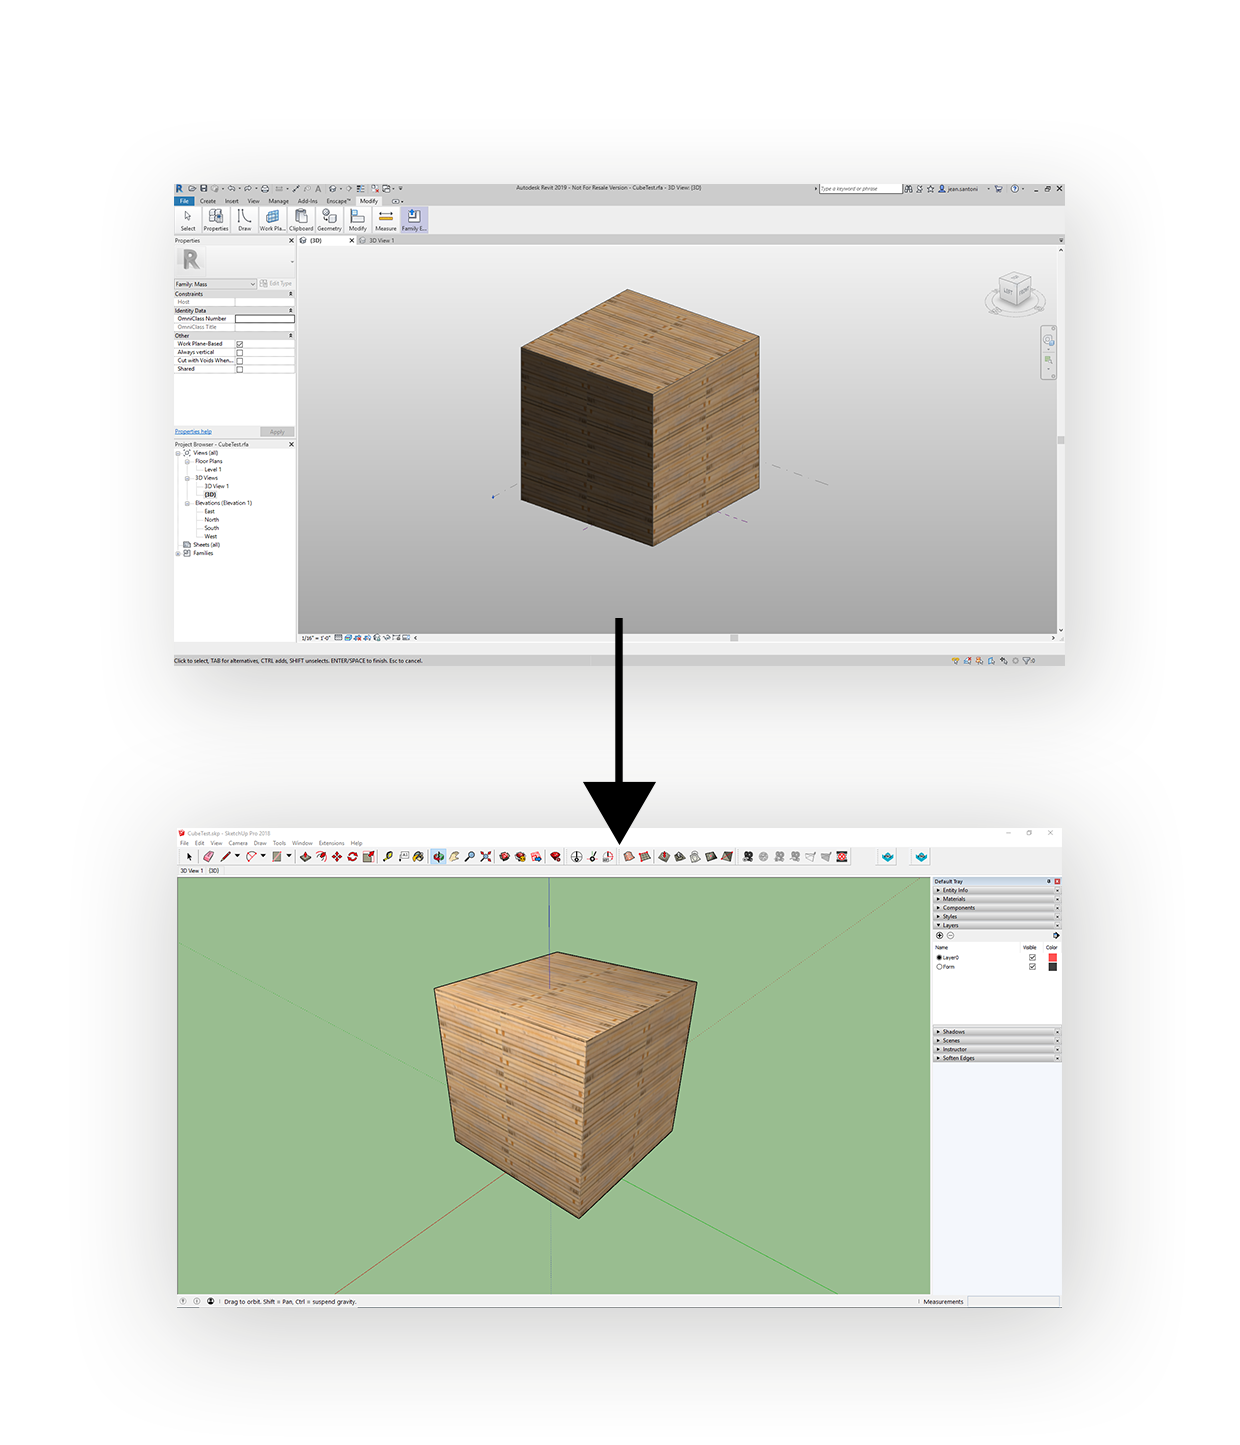 Revit to SketchUp plugin